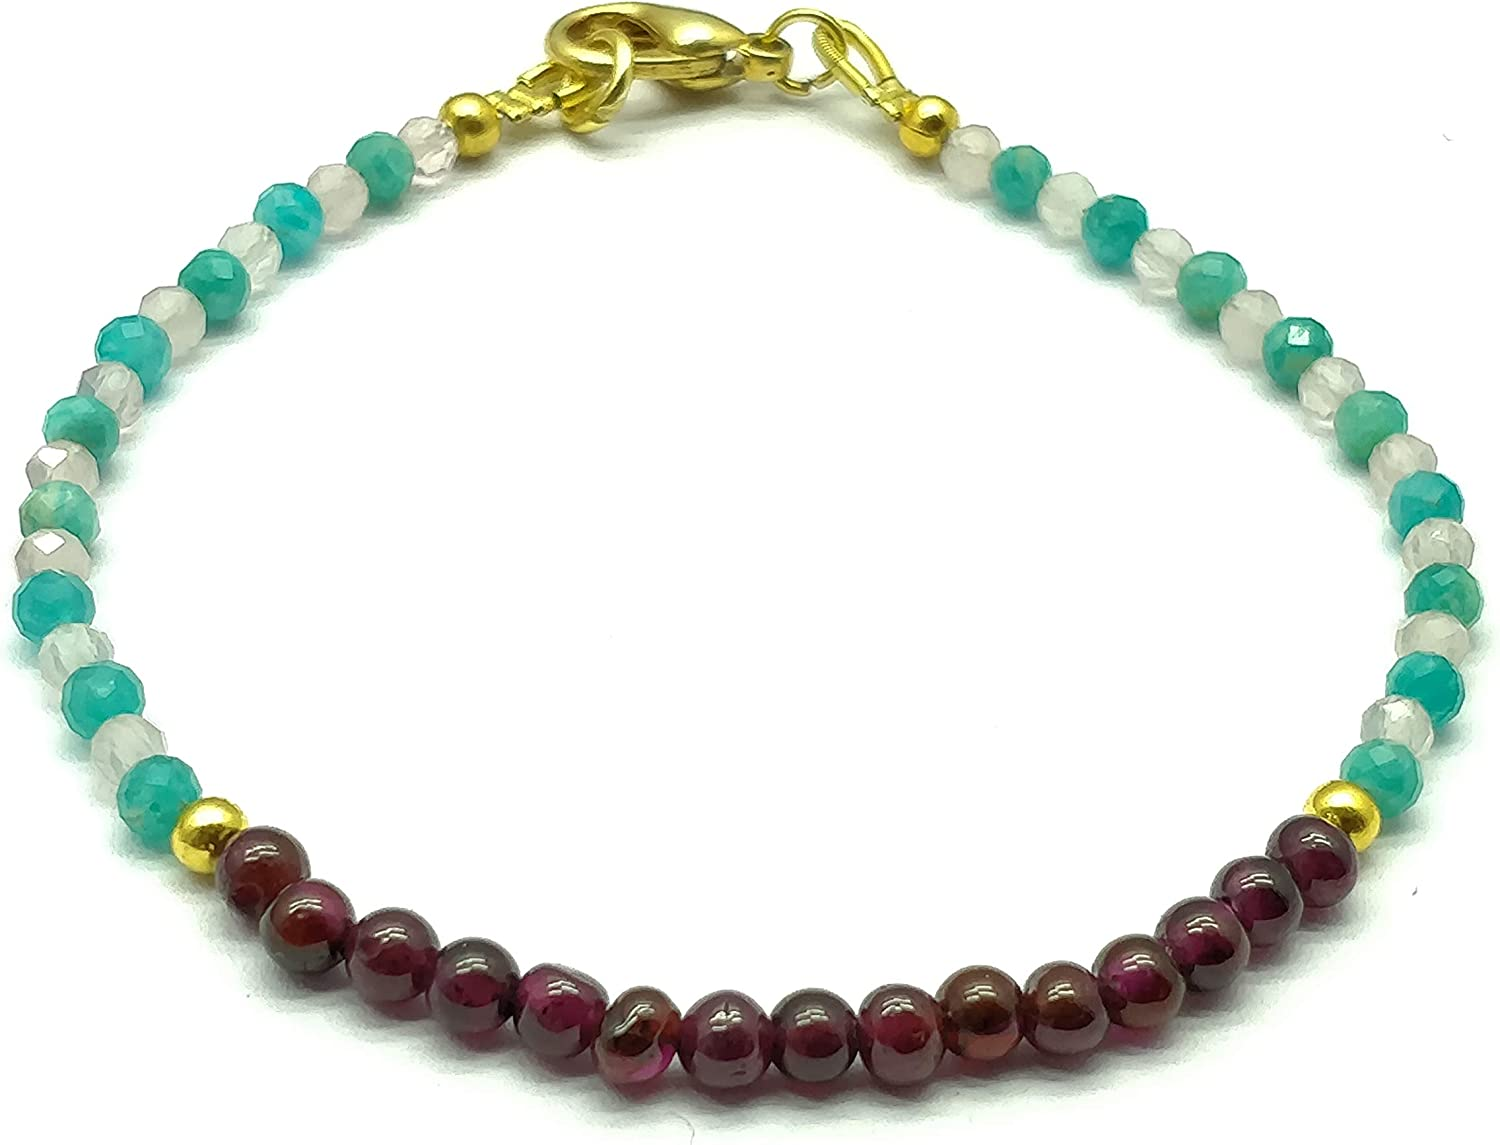 Gemstone Bracelet Max 41% OFF - Rondell Stacking Finally resale start Jewelry